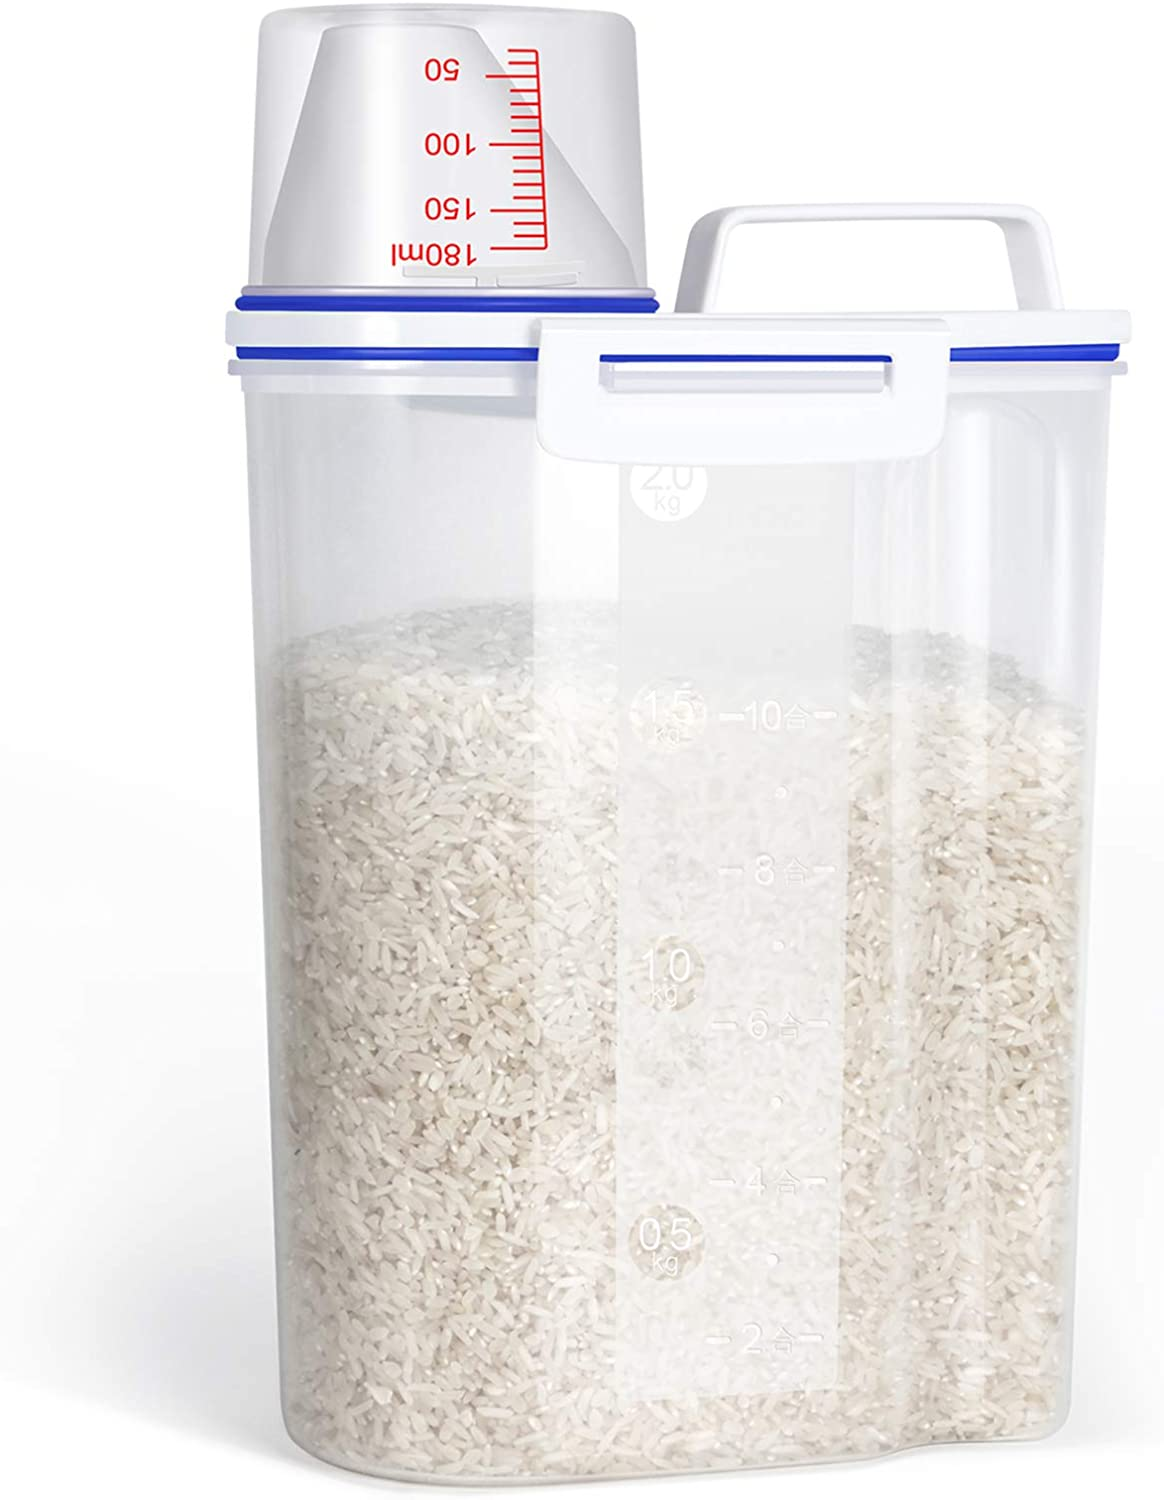 TBMax Rice Storage Container - 4 Lbs Airtight Cereal Dispenser with Measuring Cup - Food Container for for Flour, Dry Food, Kitchen Pantry Organization